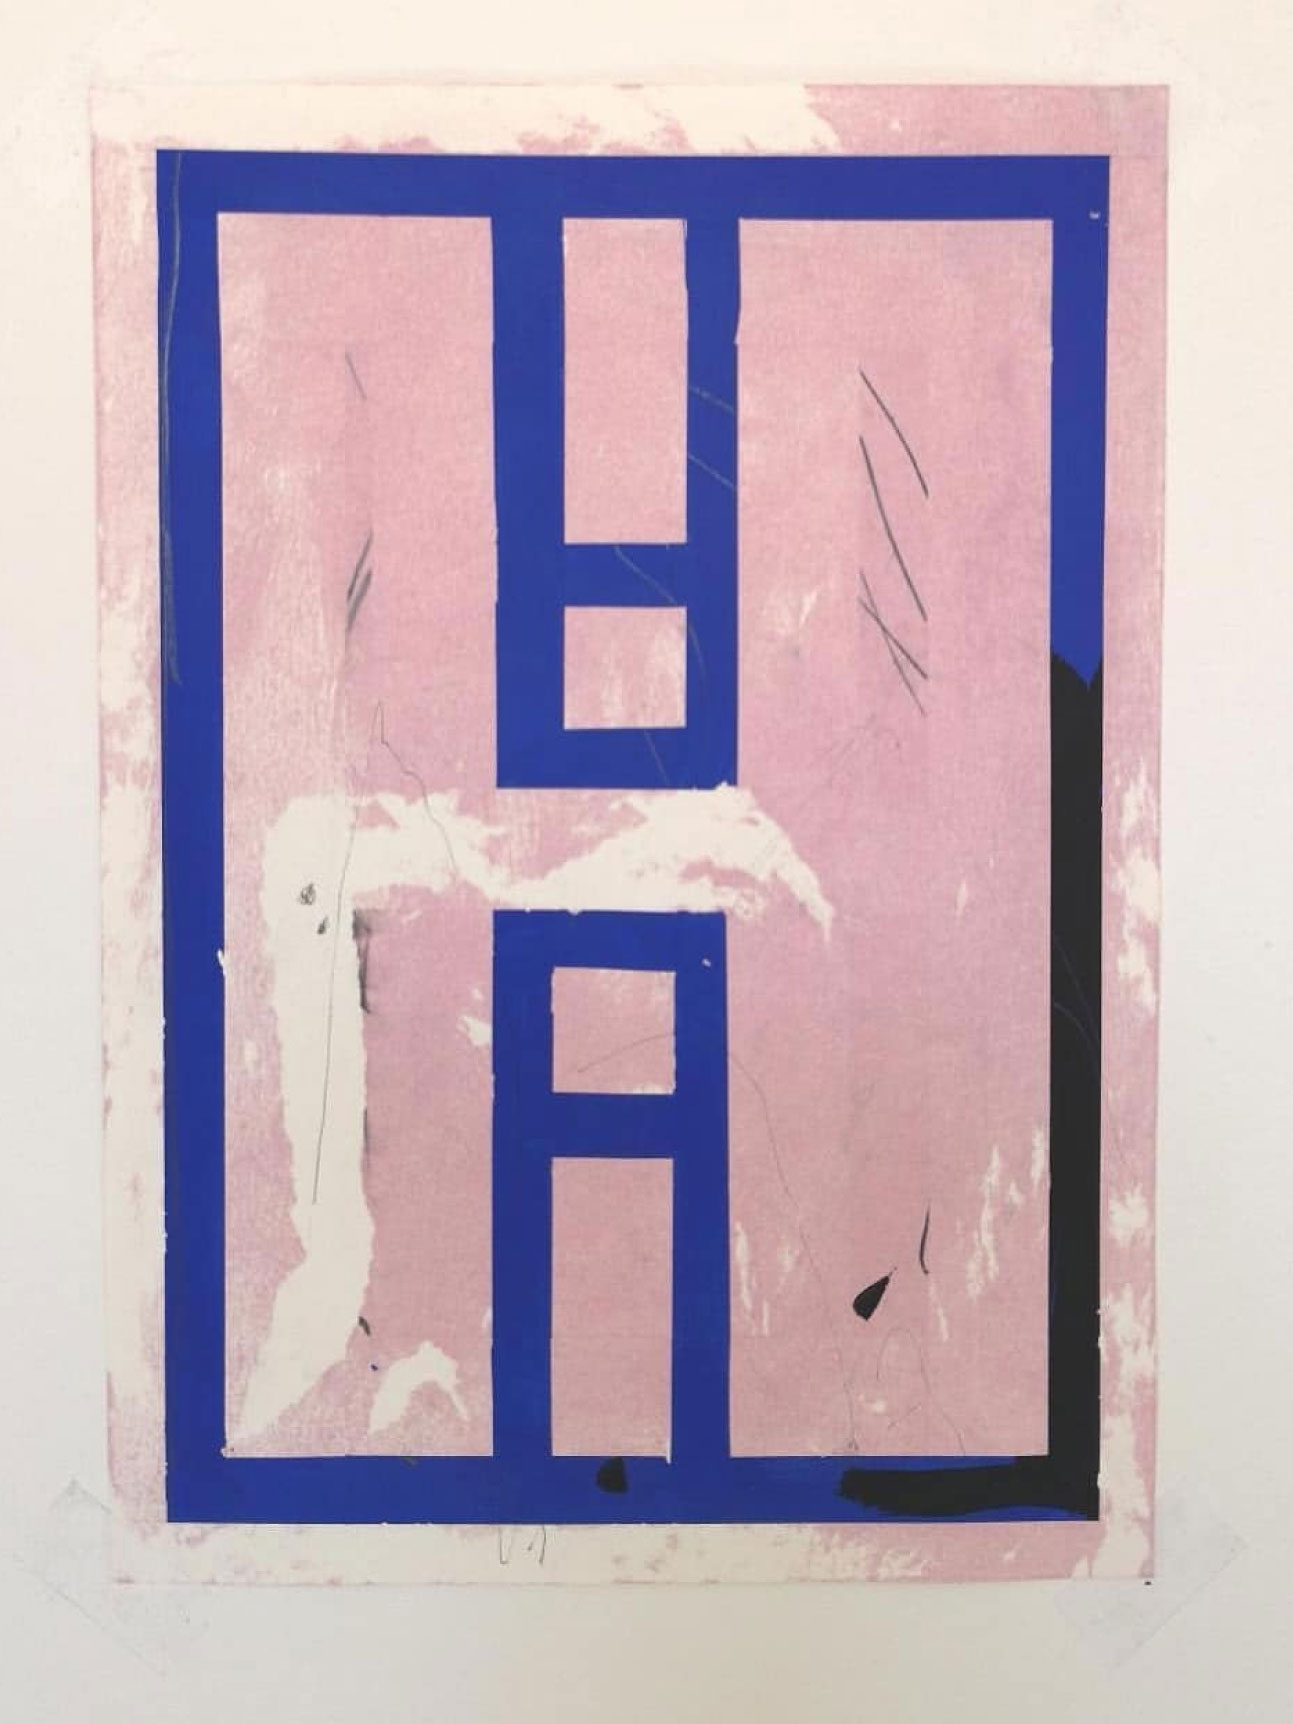 A blue lined abstract painting on pink.